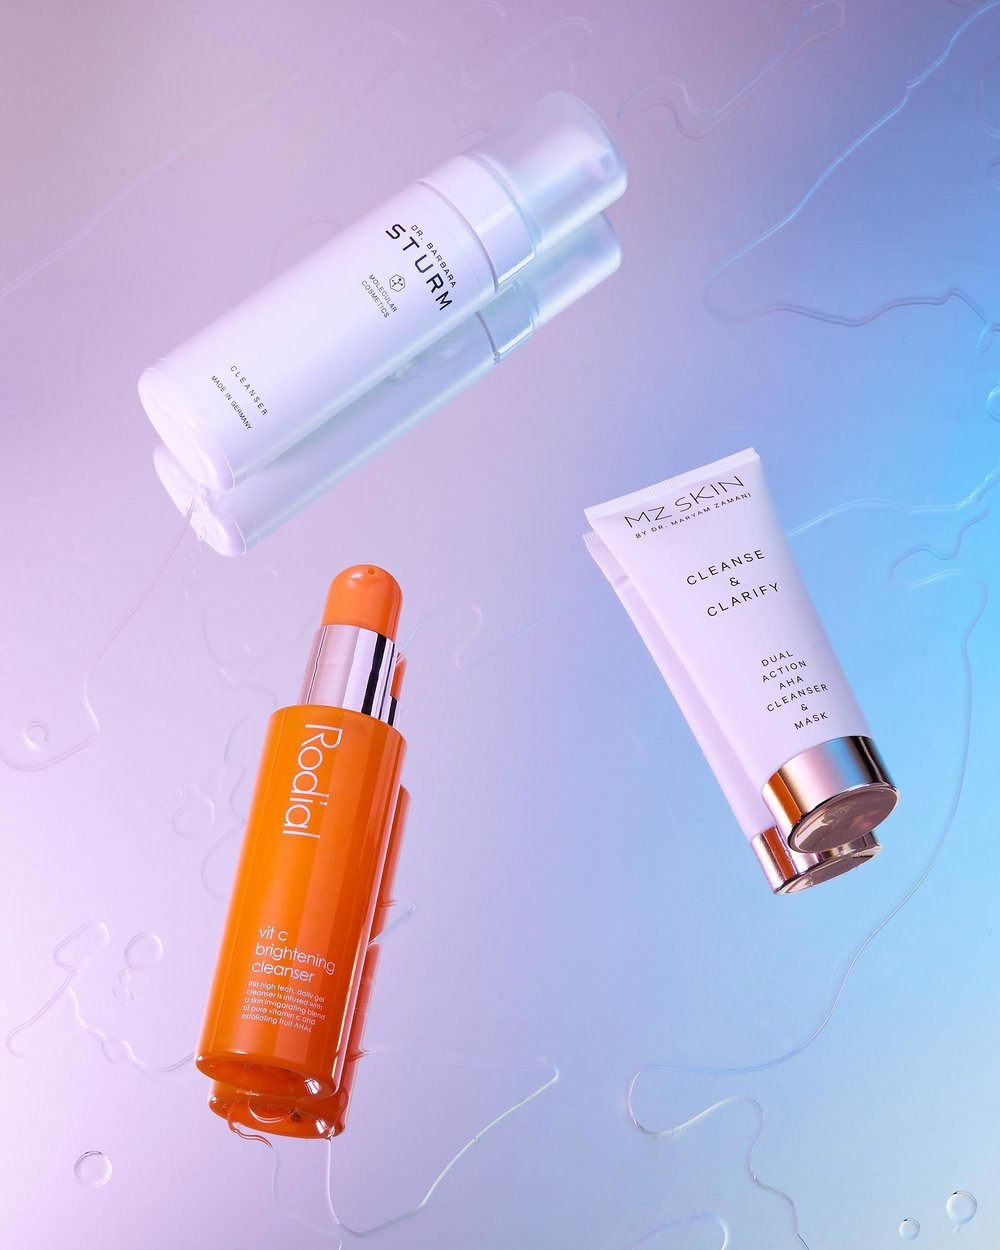 Dr-Barbara-Sturm-Cleanser-Mz-Skin-Maryam-Zamani-Cleanse-Clarify-Rodial-Vit-C-Brightening-Cleanser-Creative-Photography.jpg